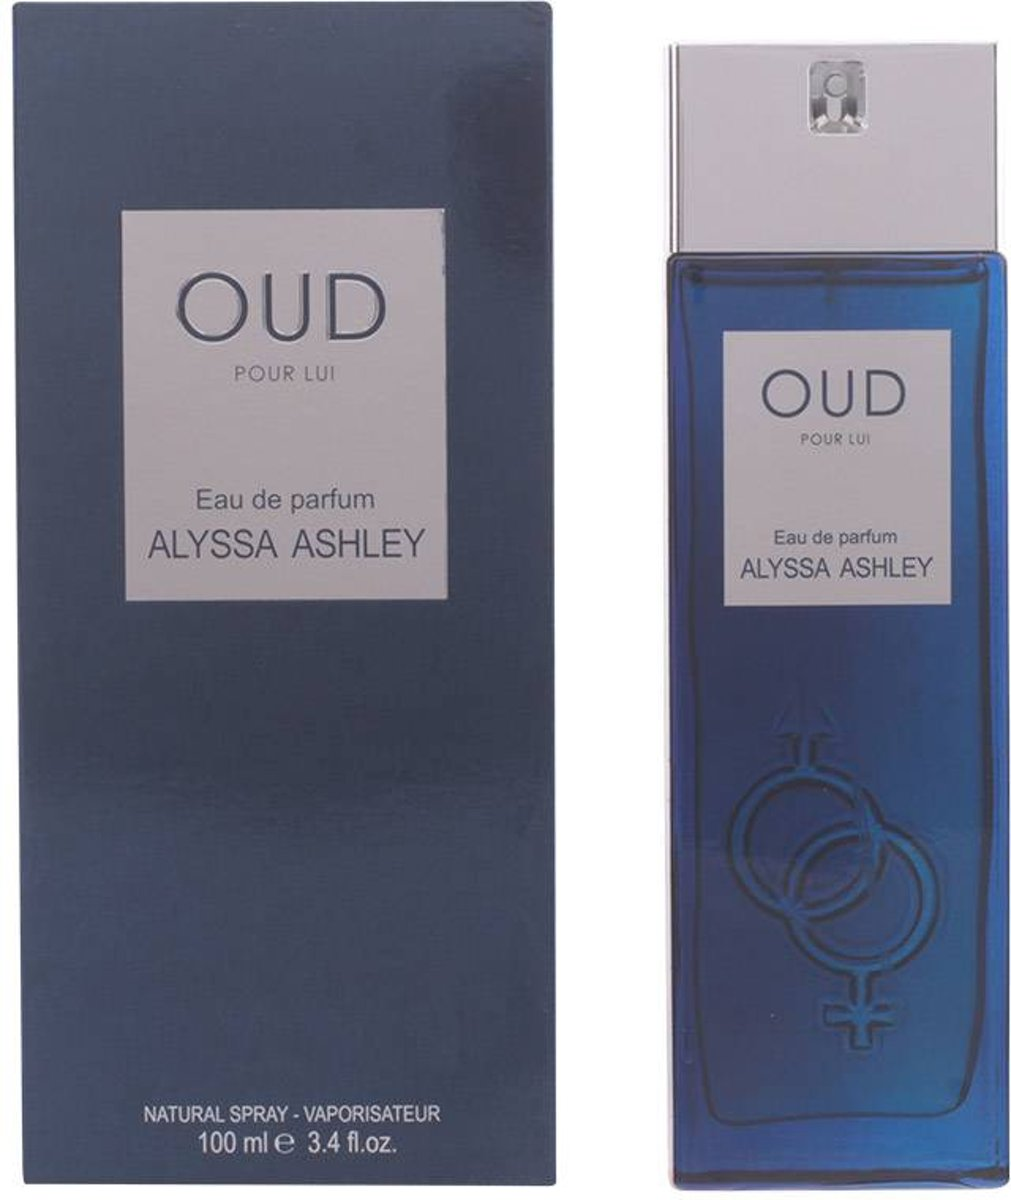 Alyssa Ashley OUD POUR LUI eau de parfum spray 100 ml